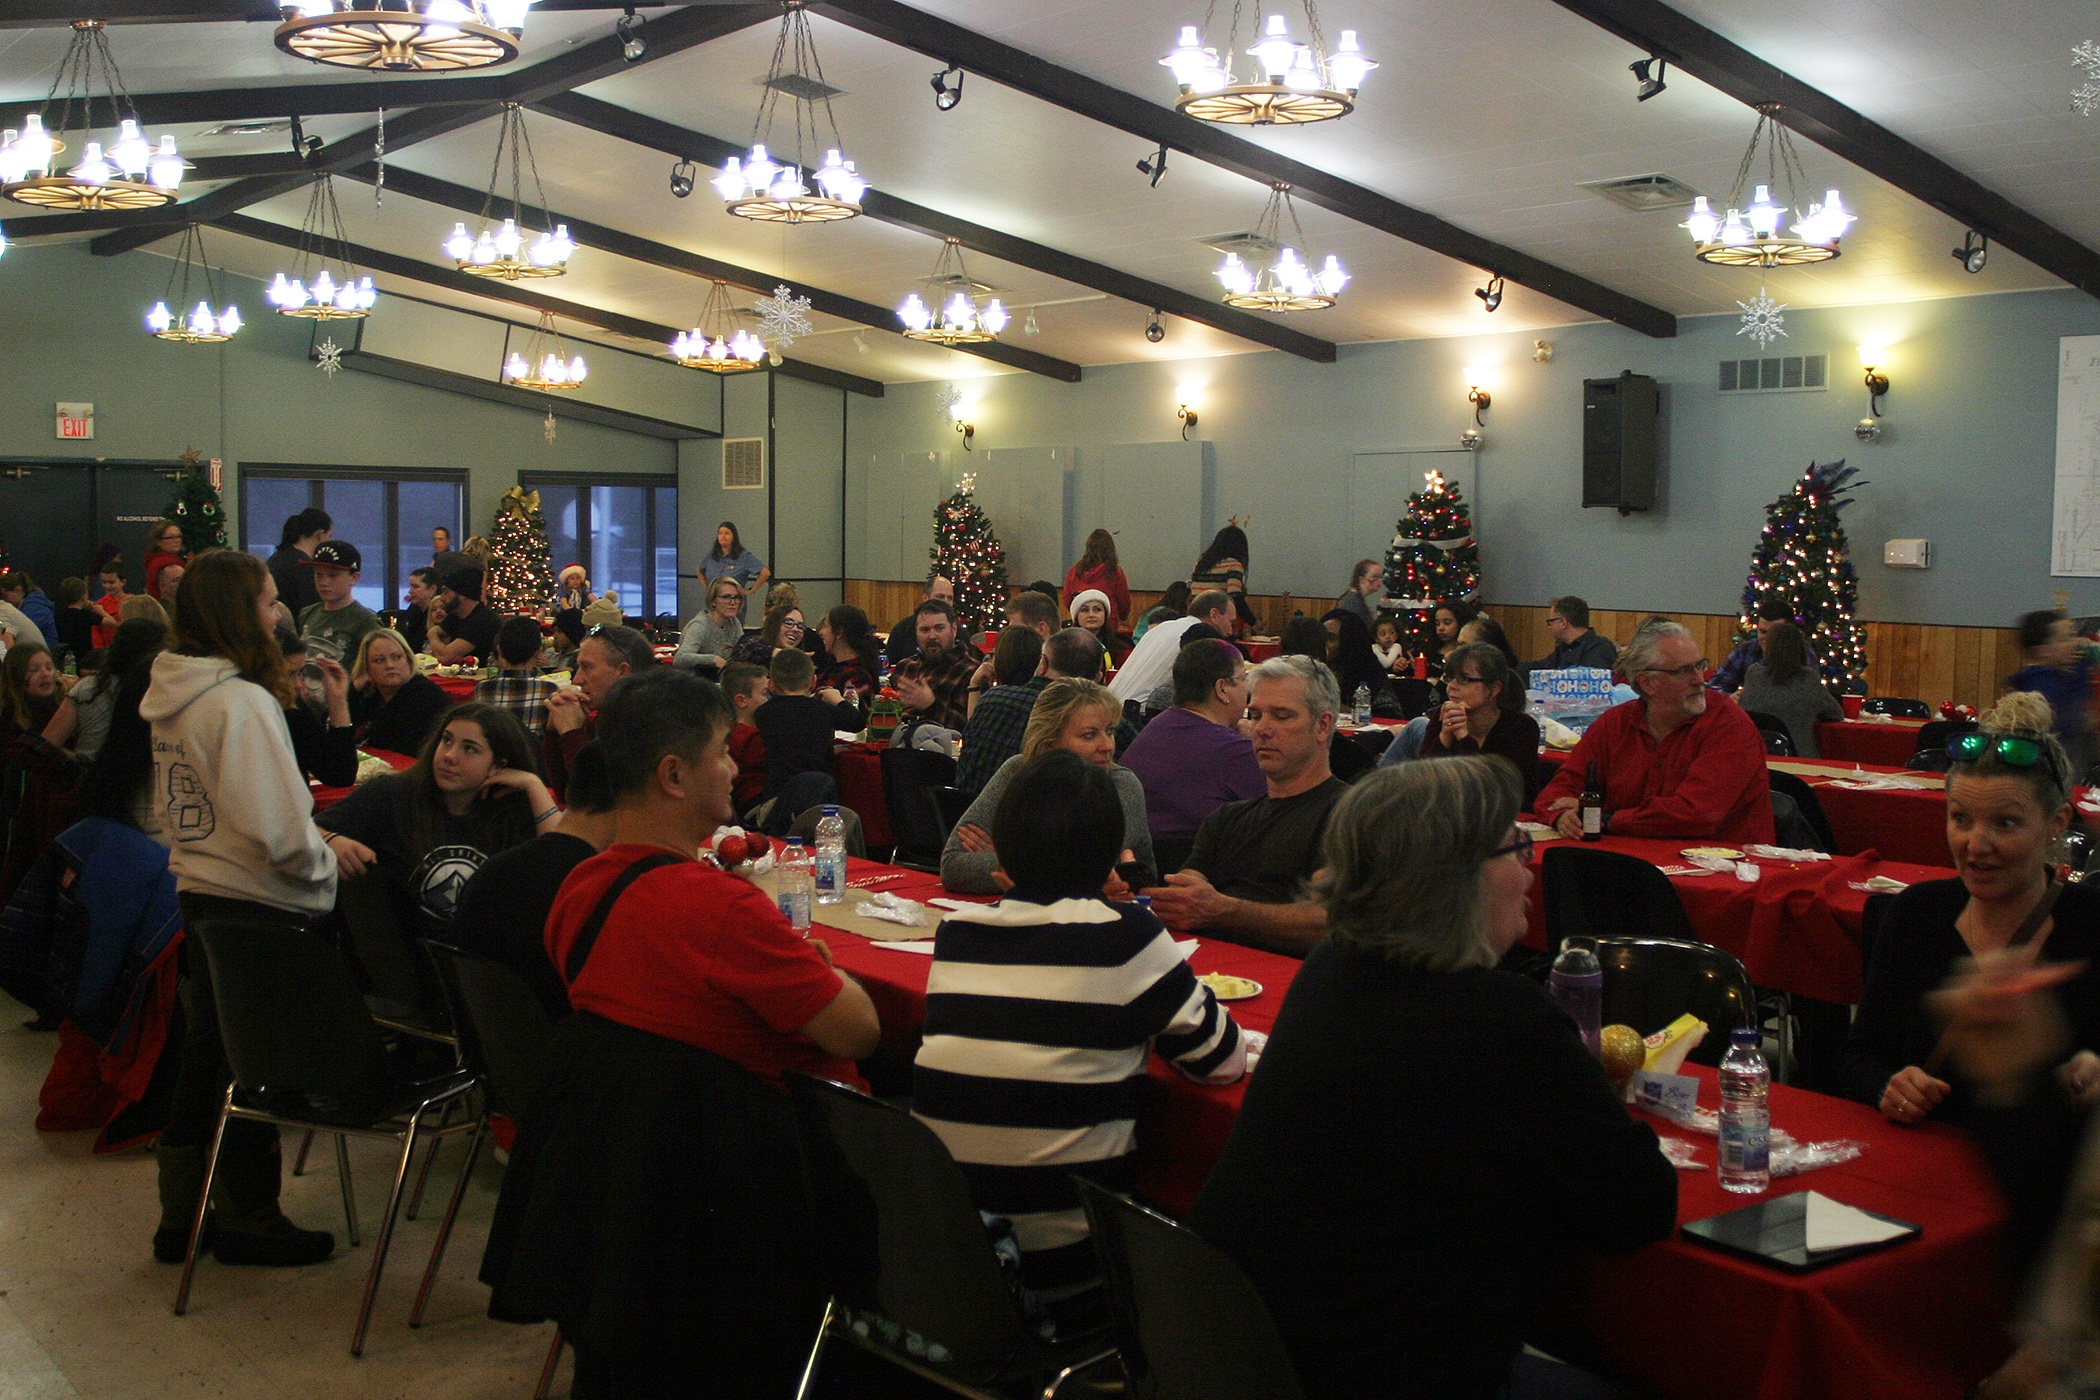 More than 200 familes affected by the Sept. 21 tornado attended a special Christmas dinner organized by Lori McGrath on Saturday, Dec. 15. Photo by Jake Davies